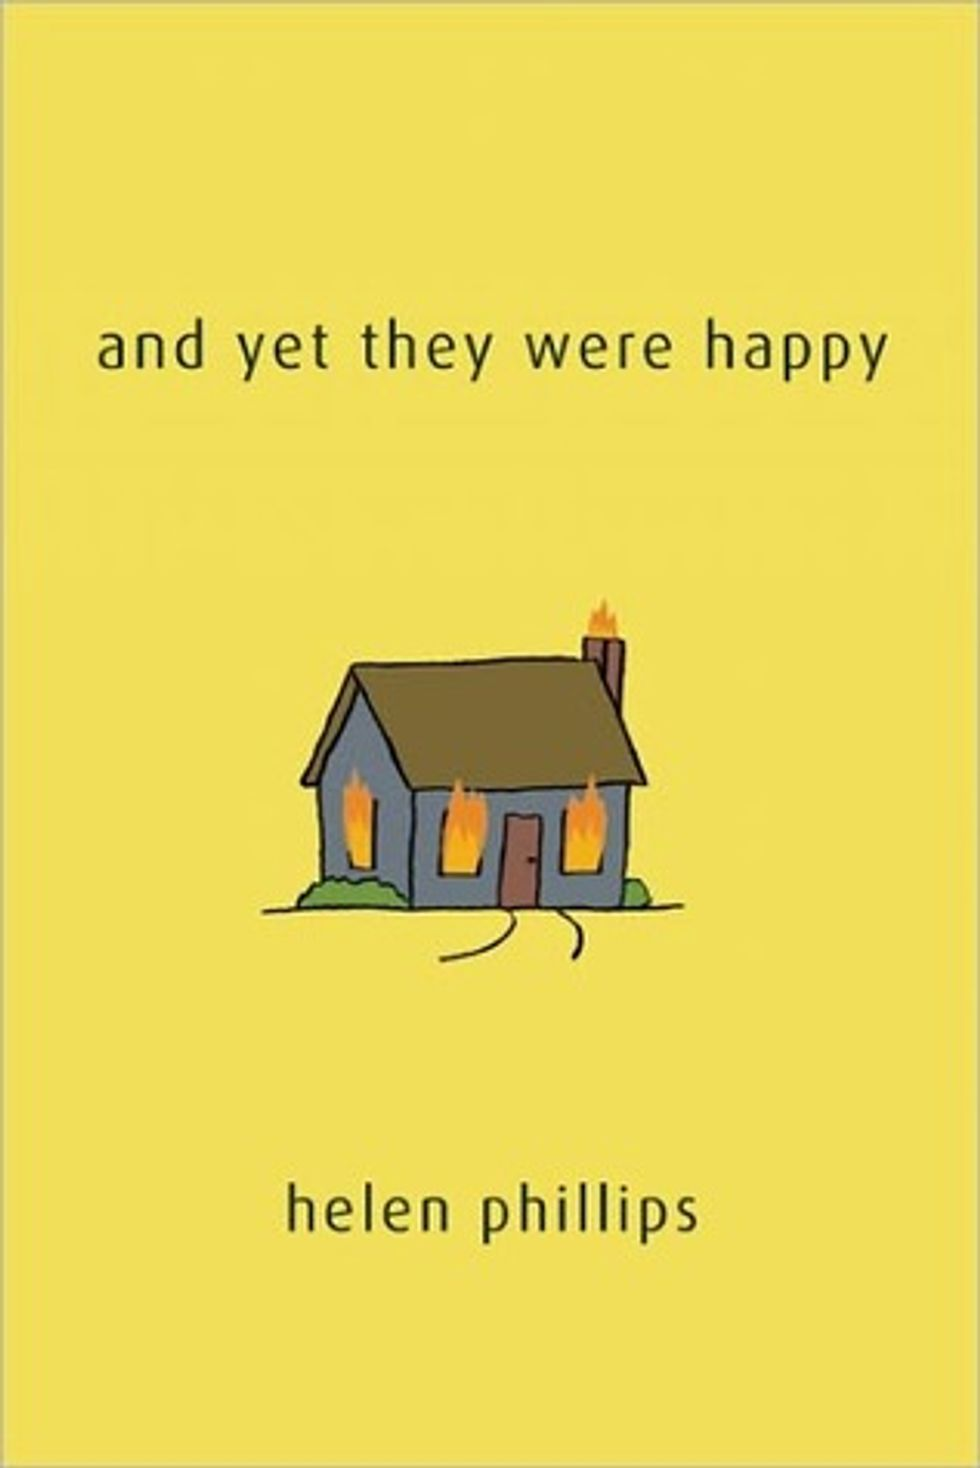 Thursday Night Fun Event Alert! Helen Phillips Reads From And Yet They Were Happy At Book Court